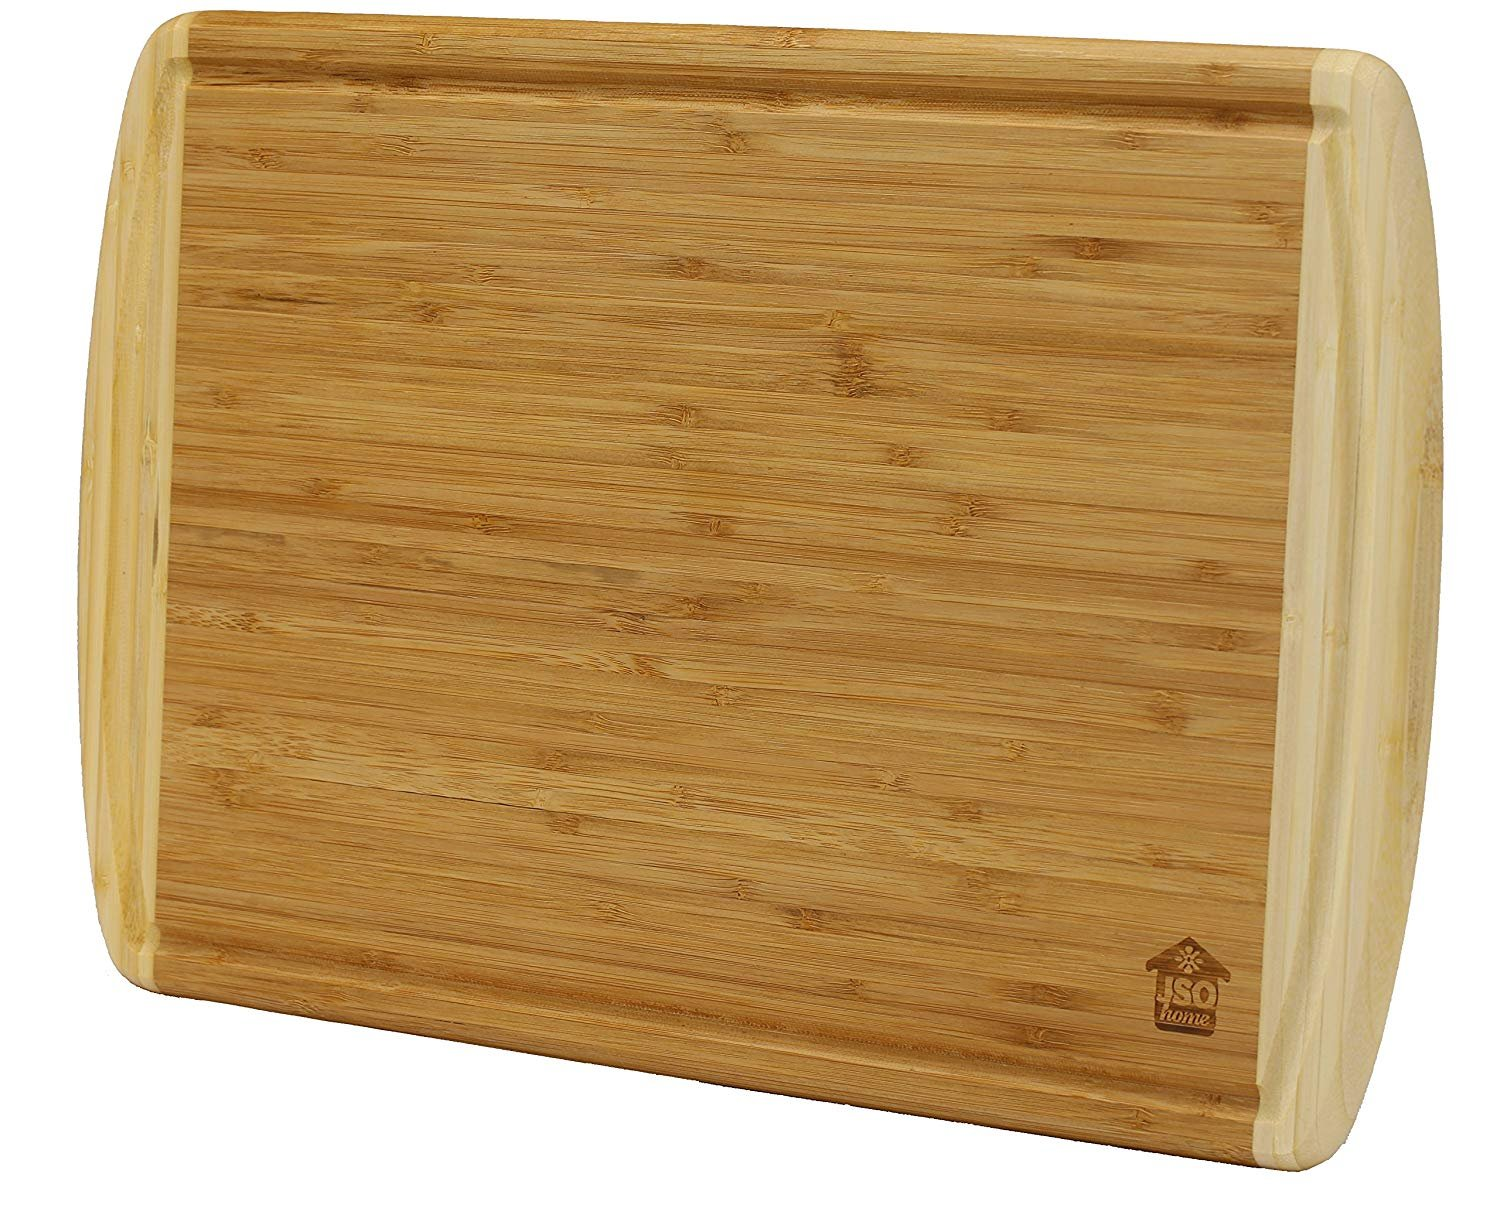 Organic Cutting Board Two Tone Wood Bamboo 12'' x 18'' W/Drip Tray, For Carving Chopping Mincing Crushing Mashing Food Prep Serving. Thick, Durable, Stylish, Resilient Finish, Bamboo